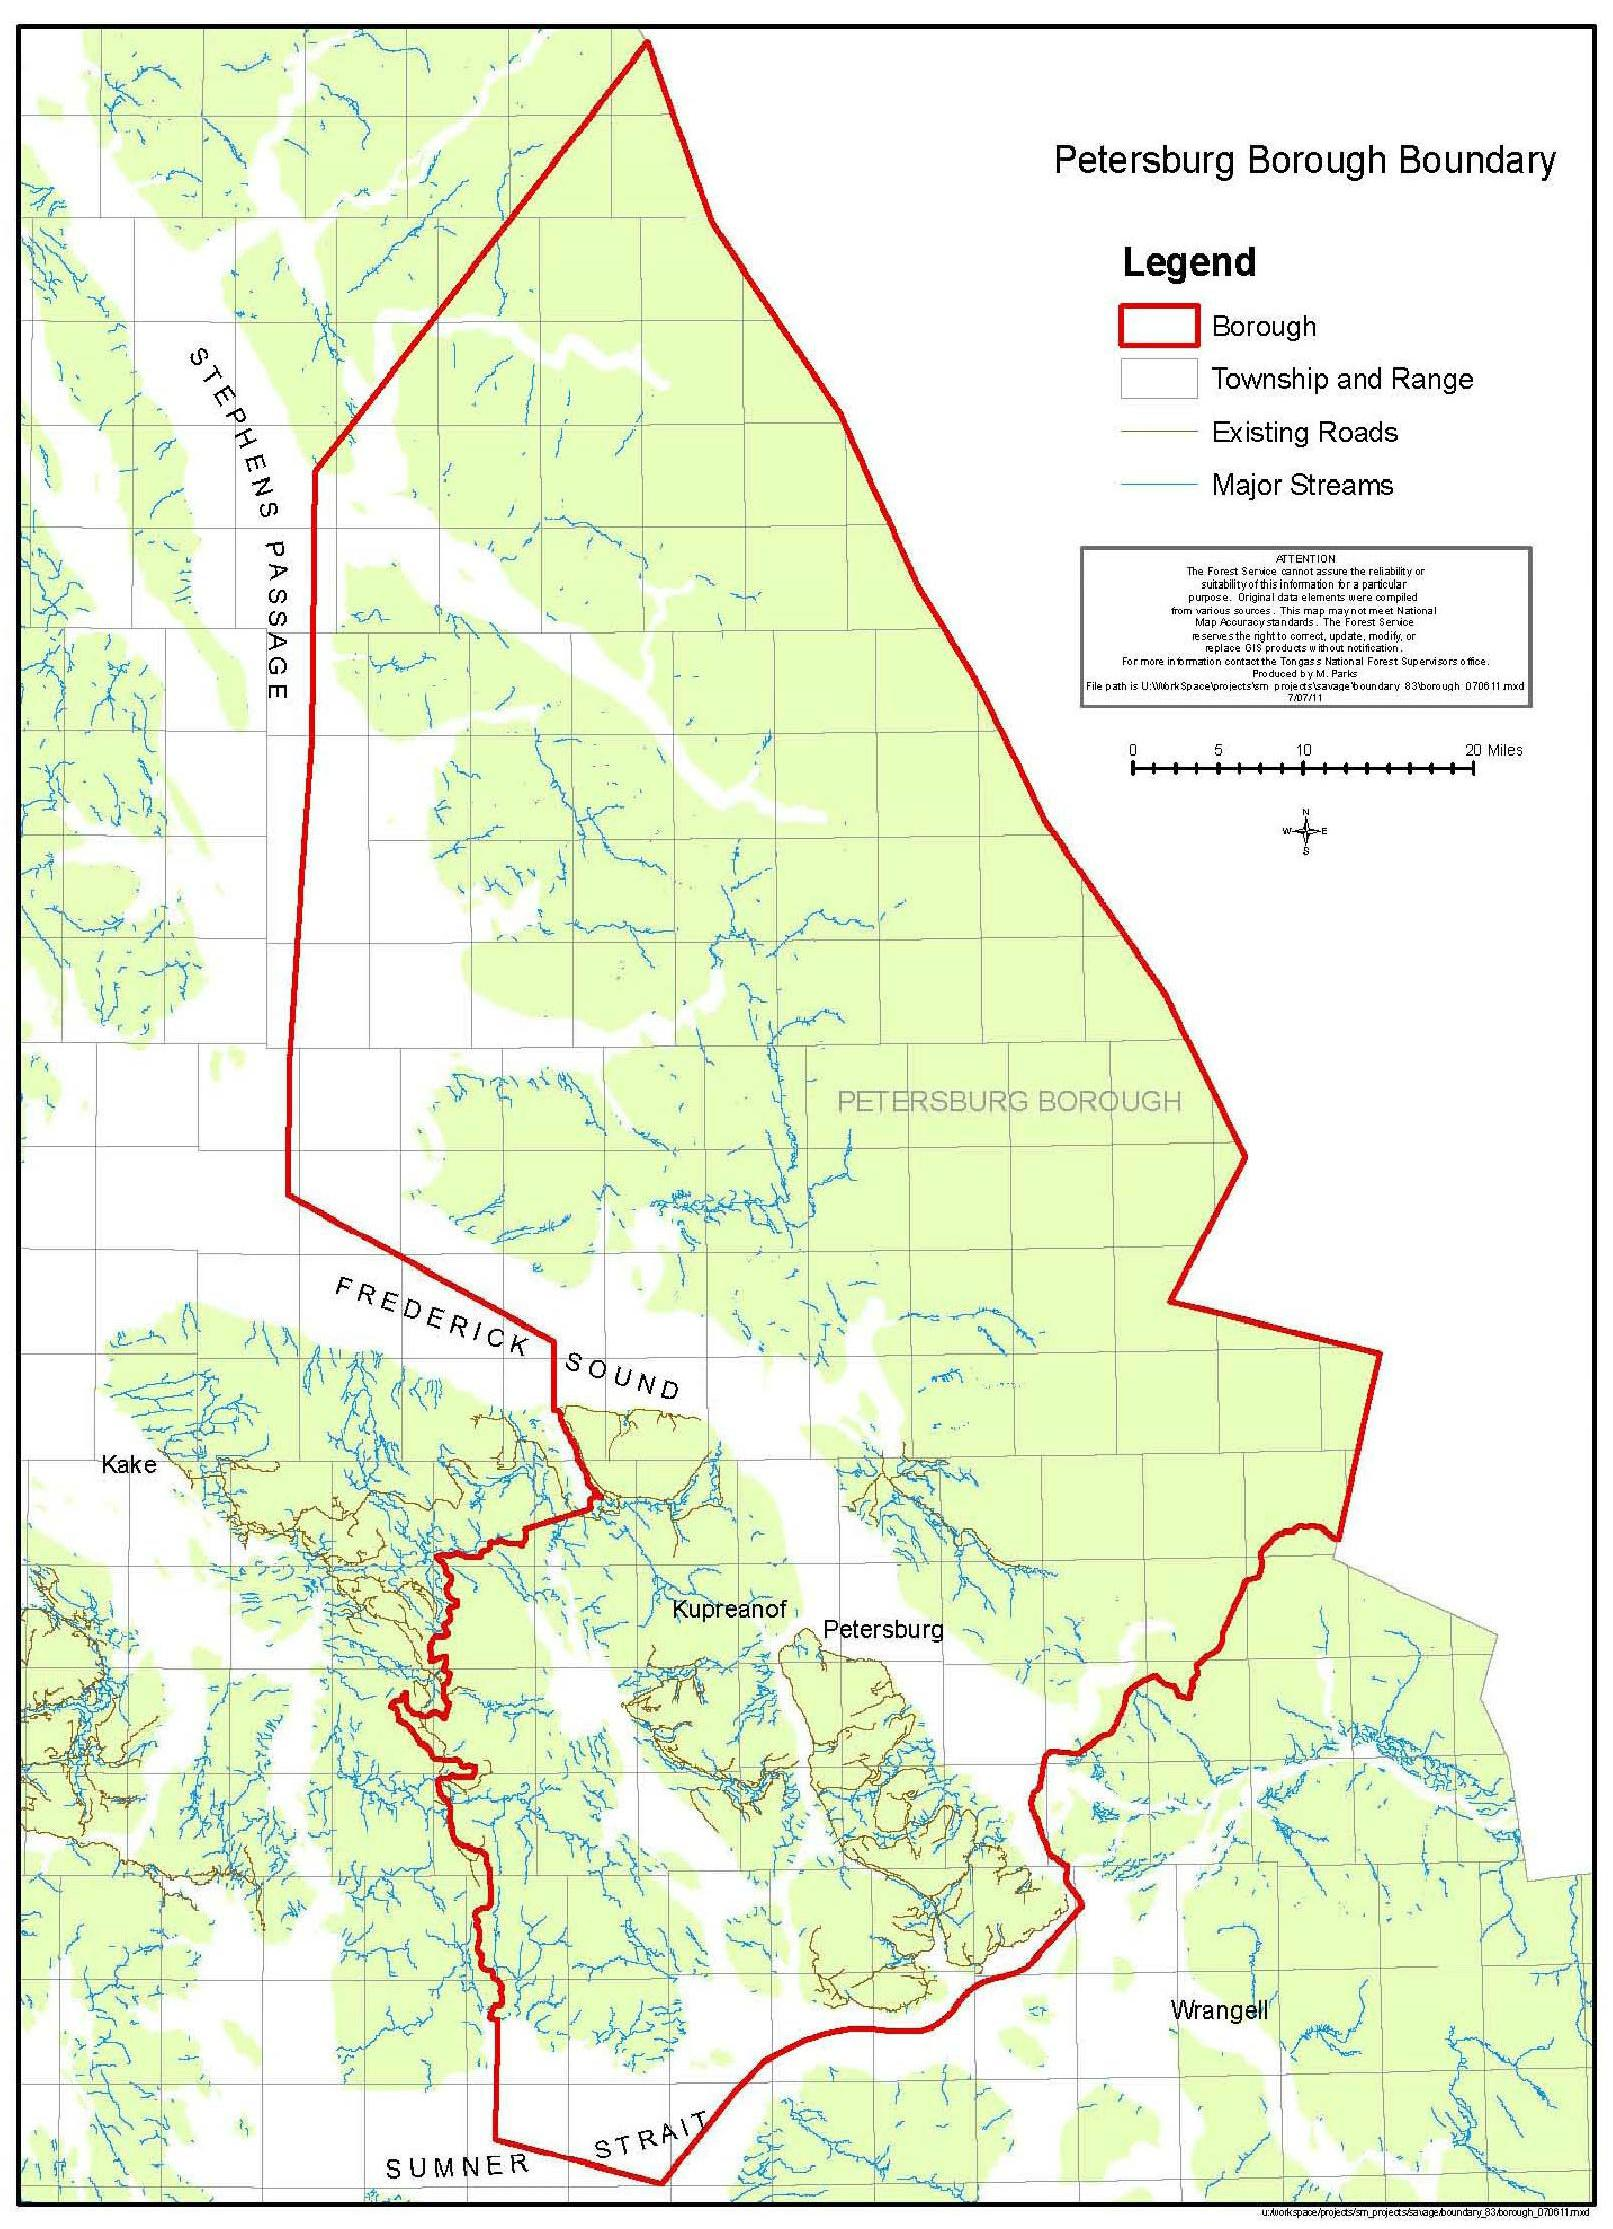 Juneau appeals Local Boundary Commission's Petersburg ...